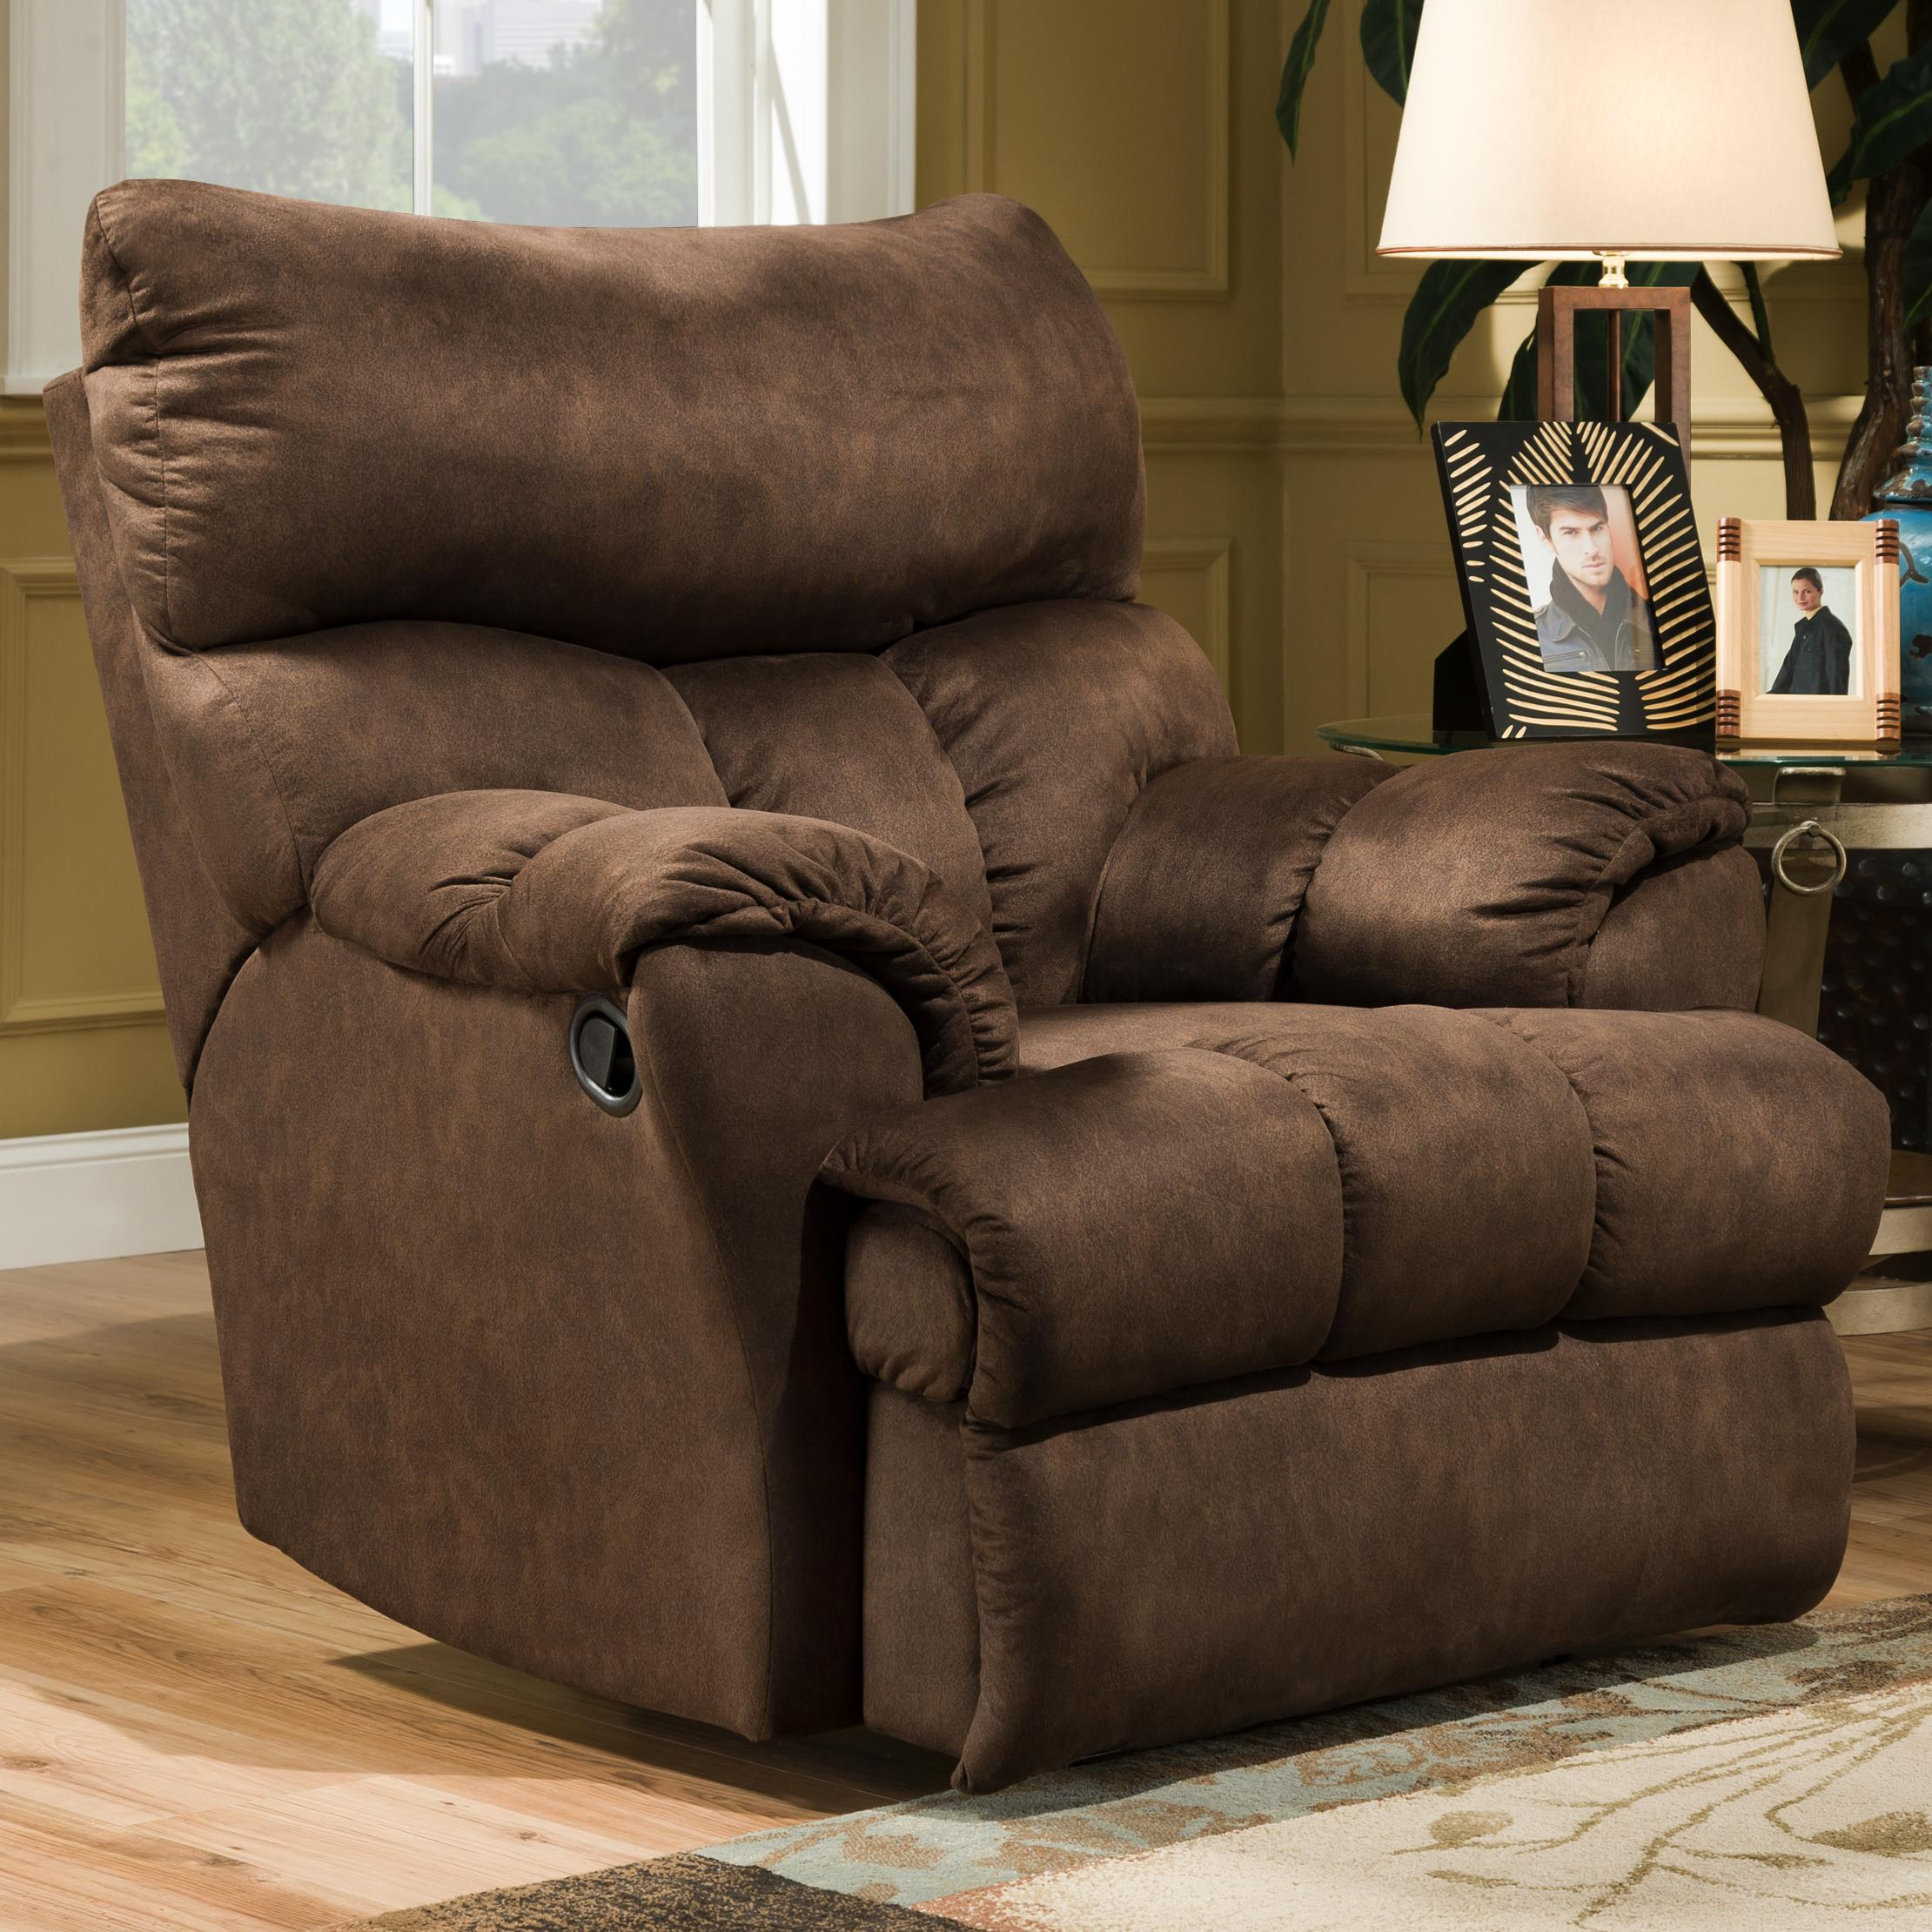 Swivel Rocker Recliner Chair Southern Motion Dreamer Wall Hugger Recliner For Comfort You Can